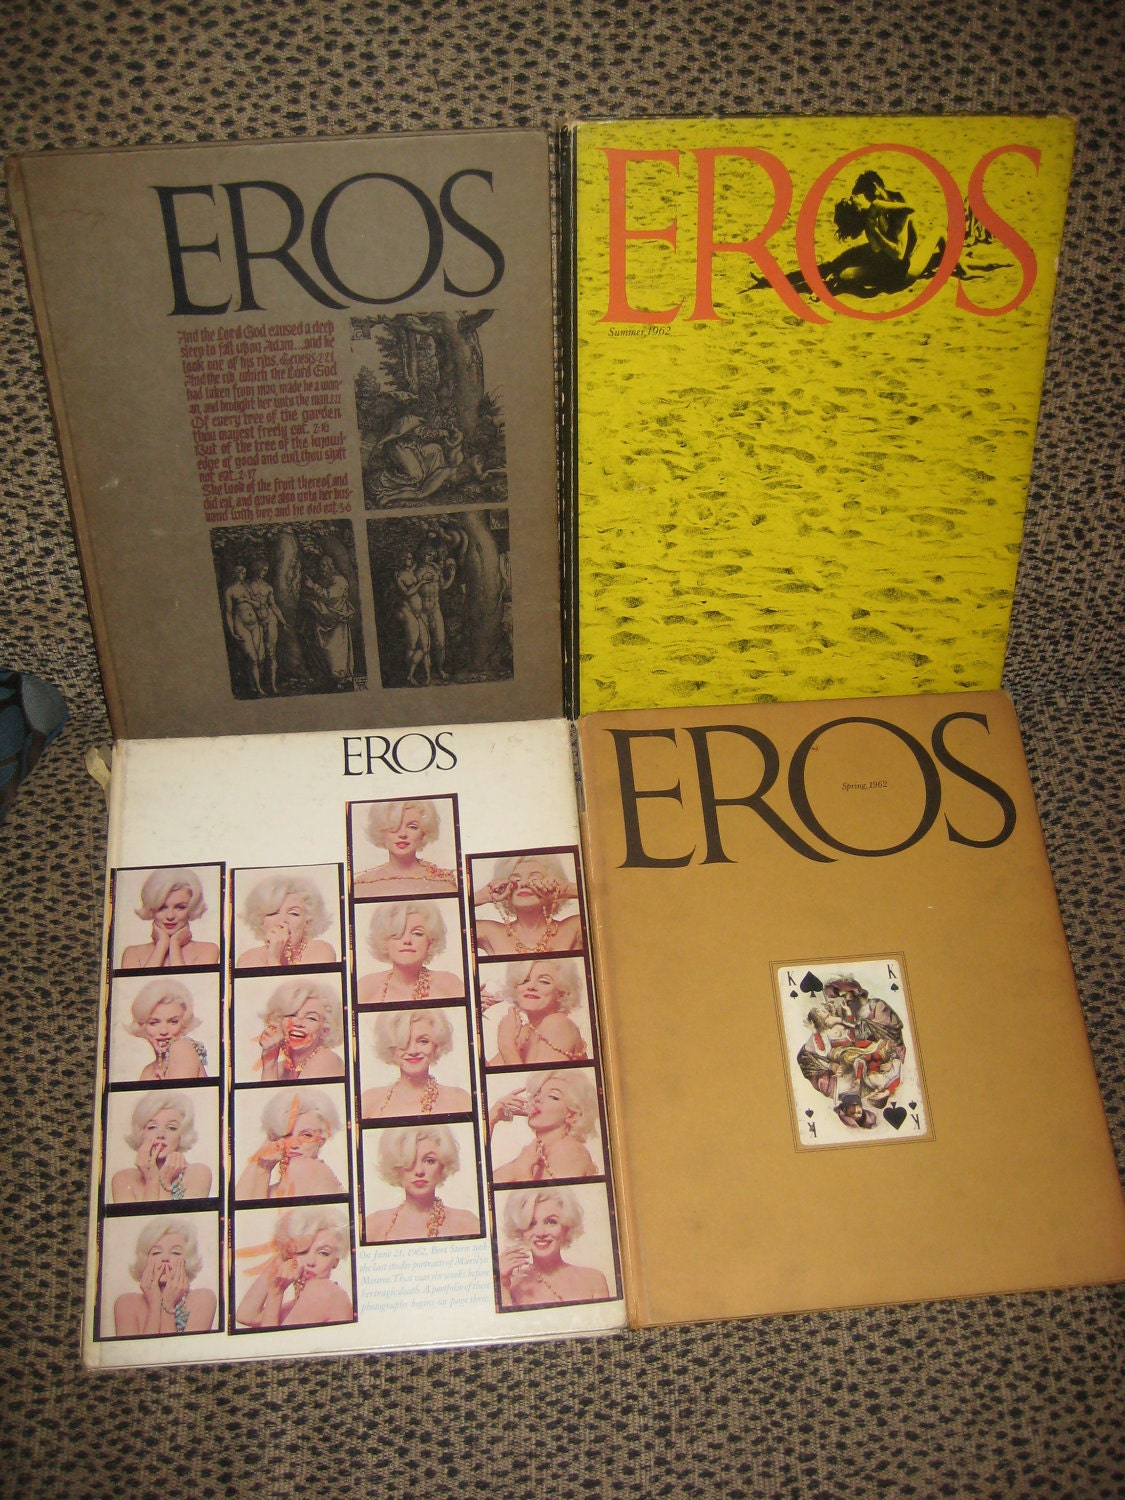 Eros Complete Set 1962 Hardcover Magazines by Ralph Ginzburg